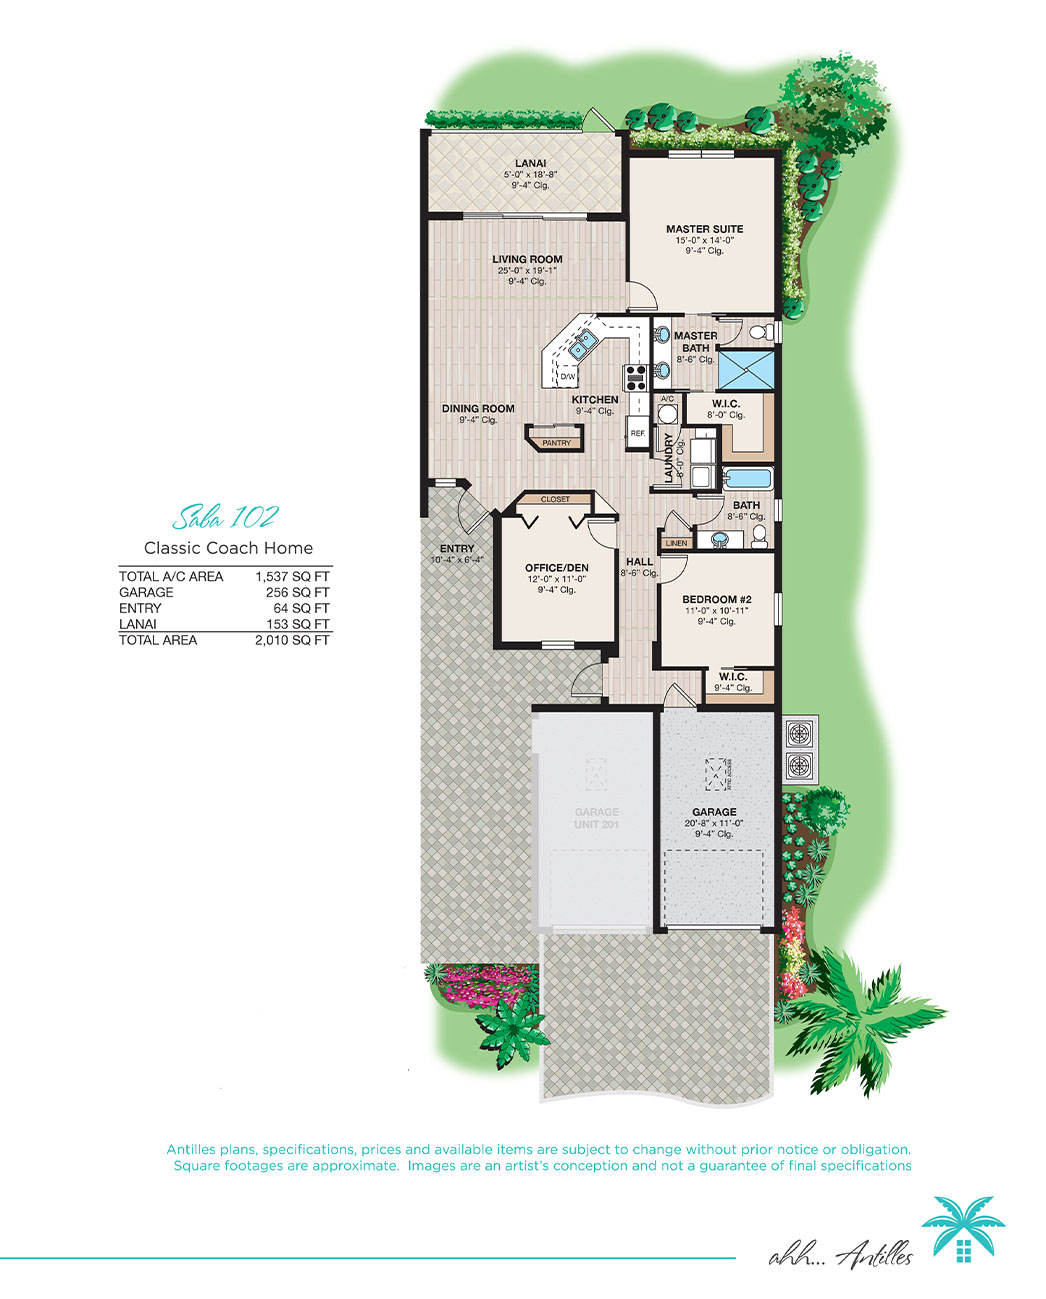 Classic Coach Homes Saba 102 | Antilles of Naples, Florida - West Indies Styled Residential Resort